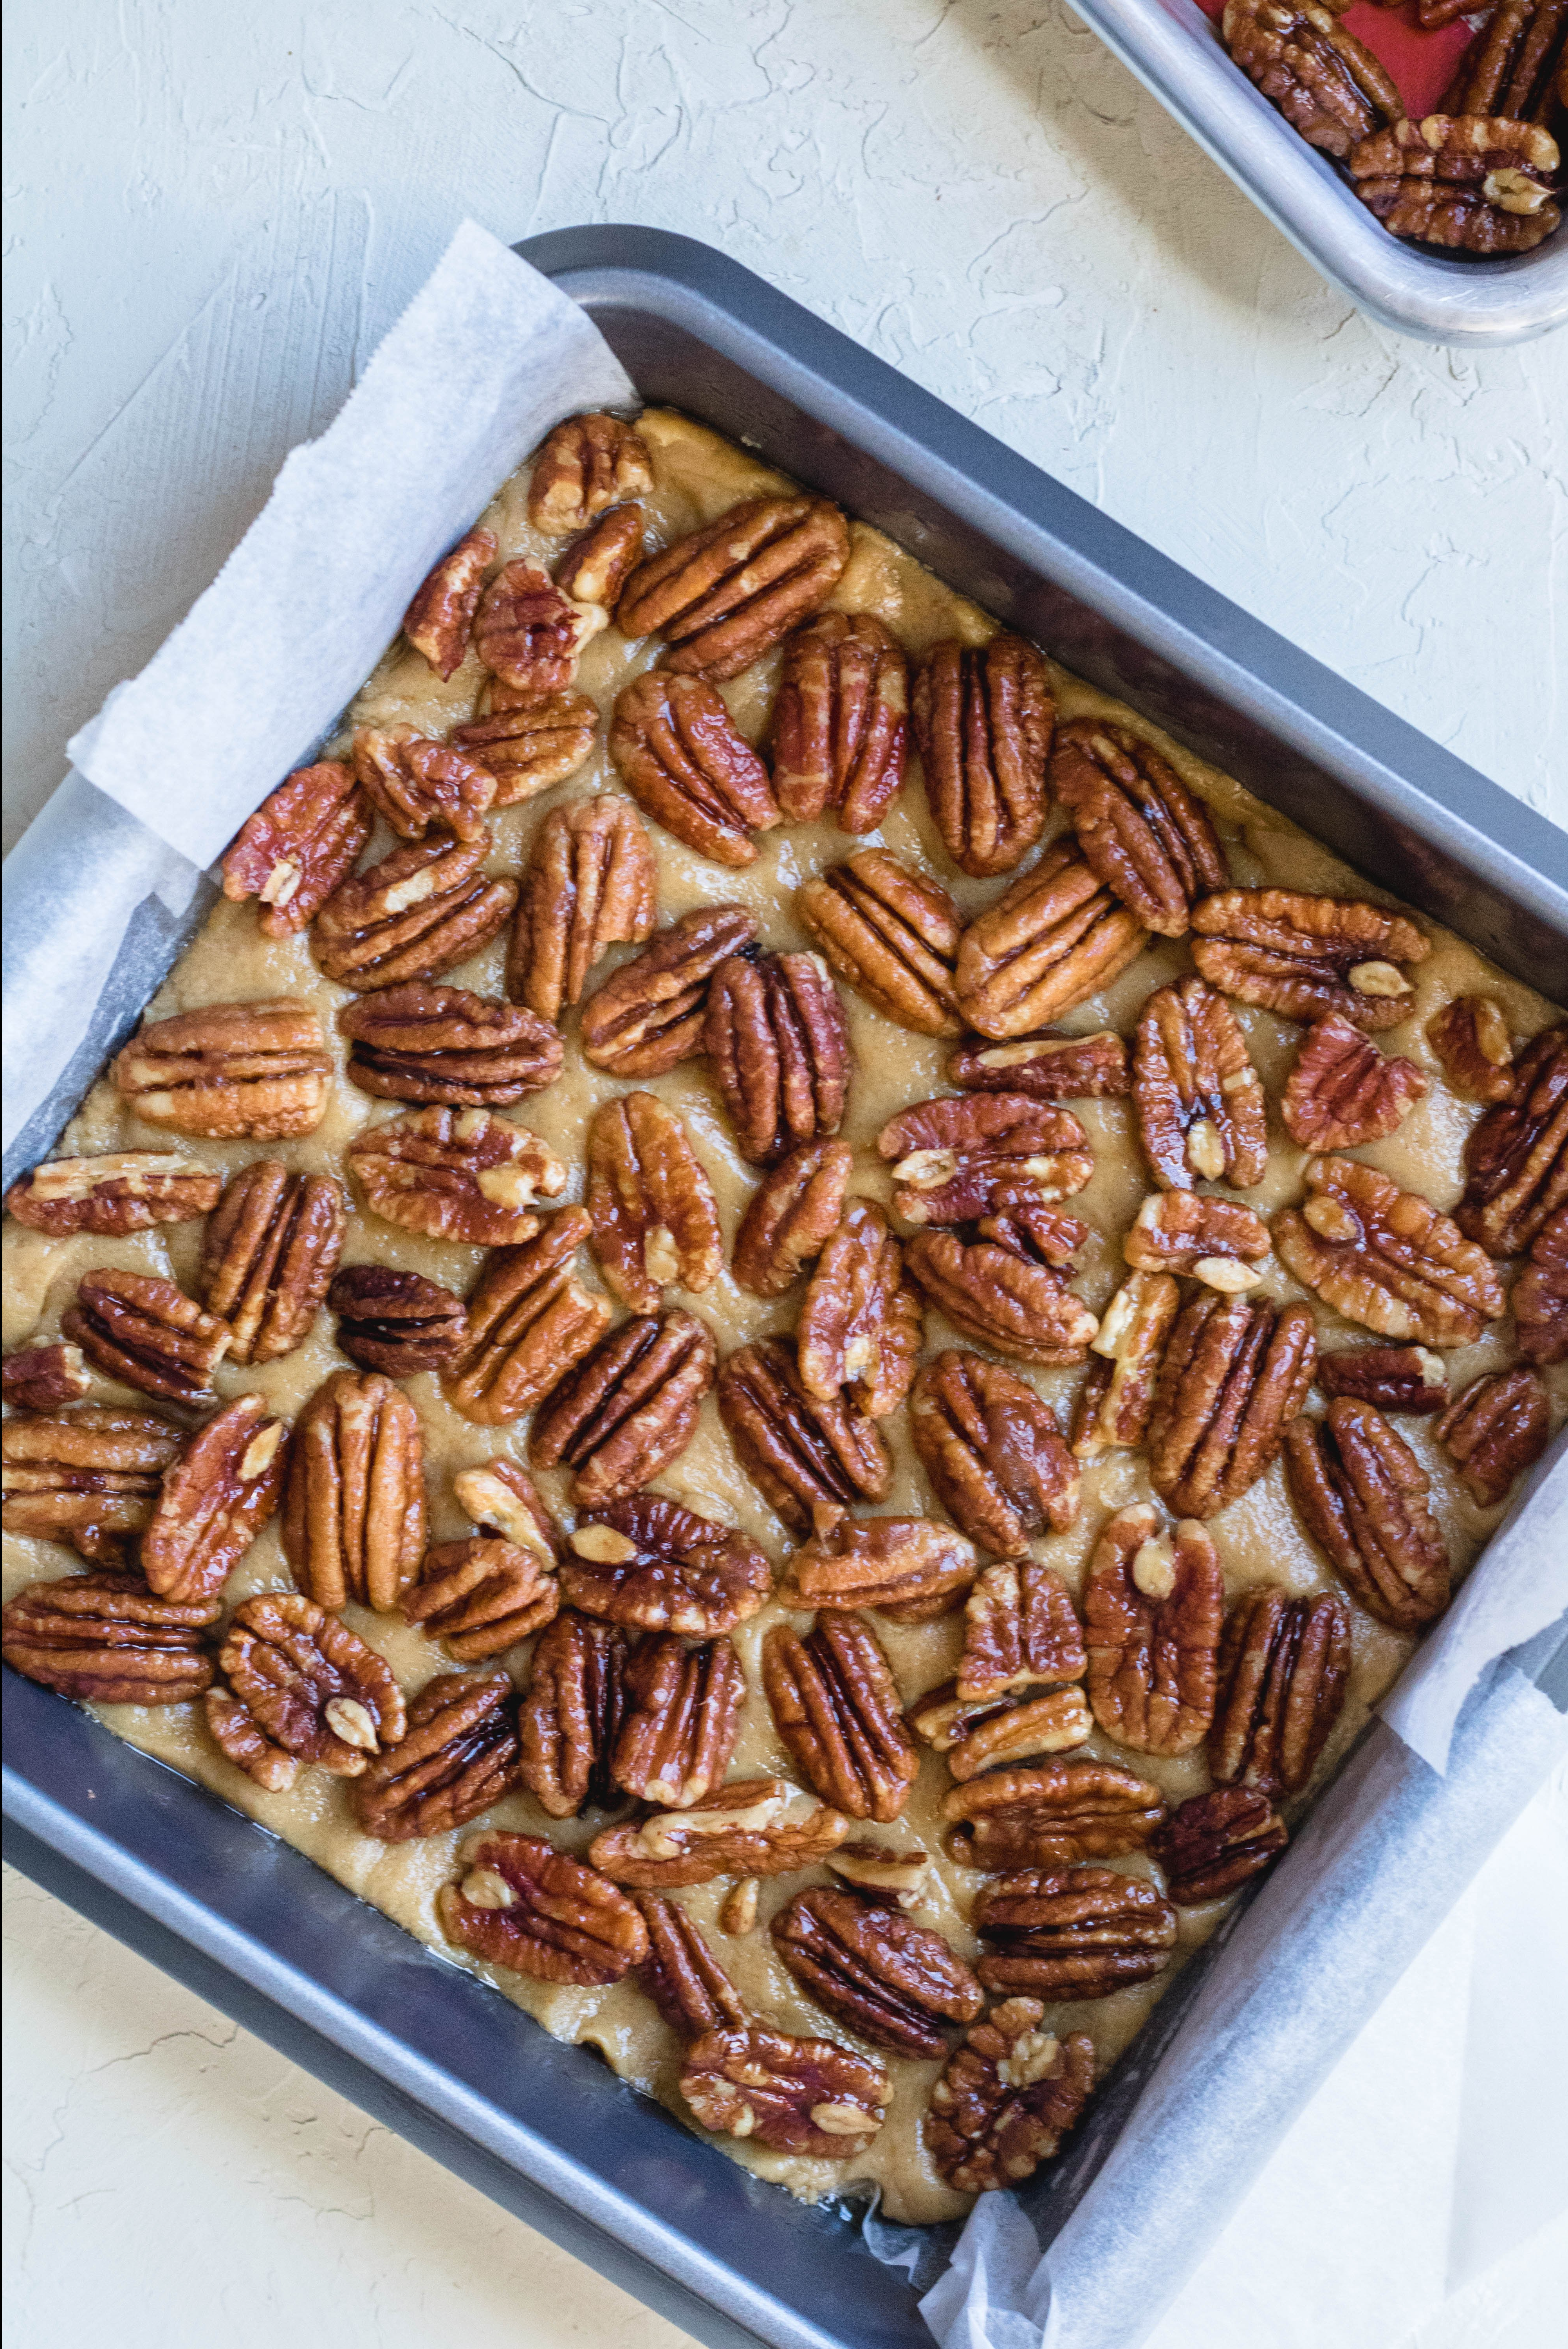 brown butter blondie dough with pecans on top